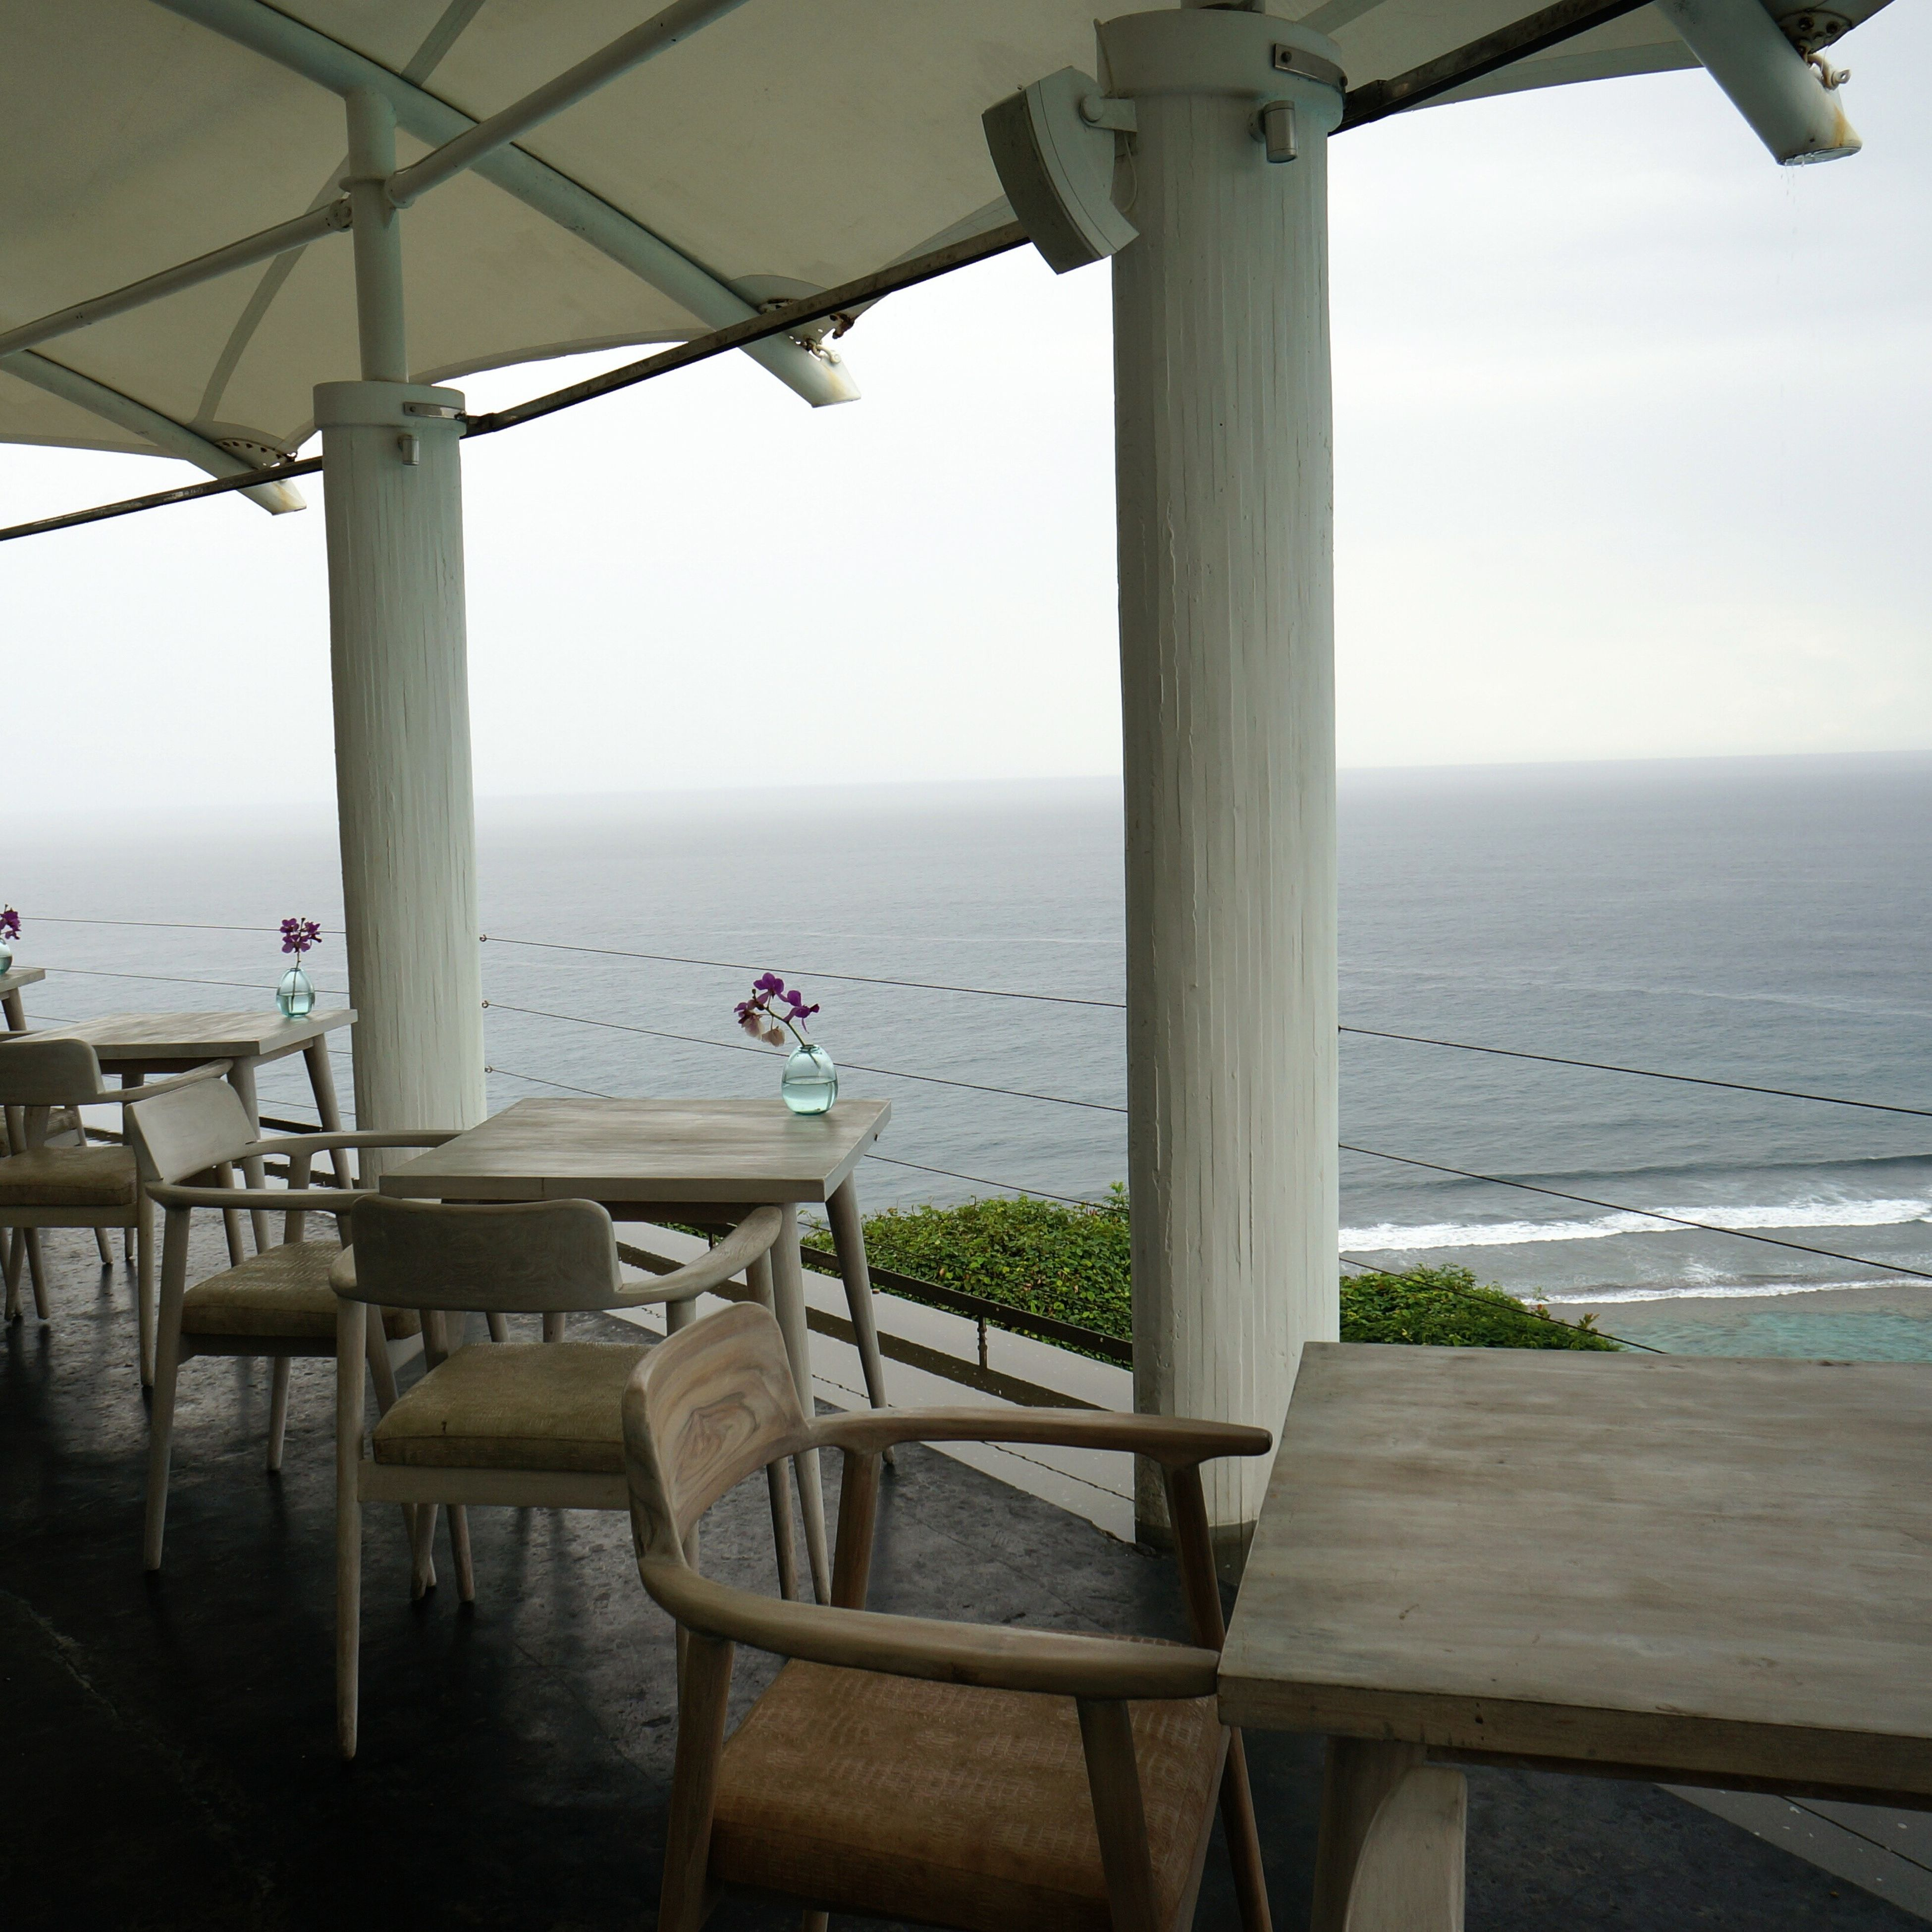 a perfect place to have luncha Hello World Bali